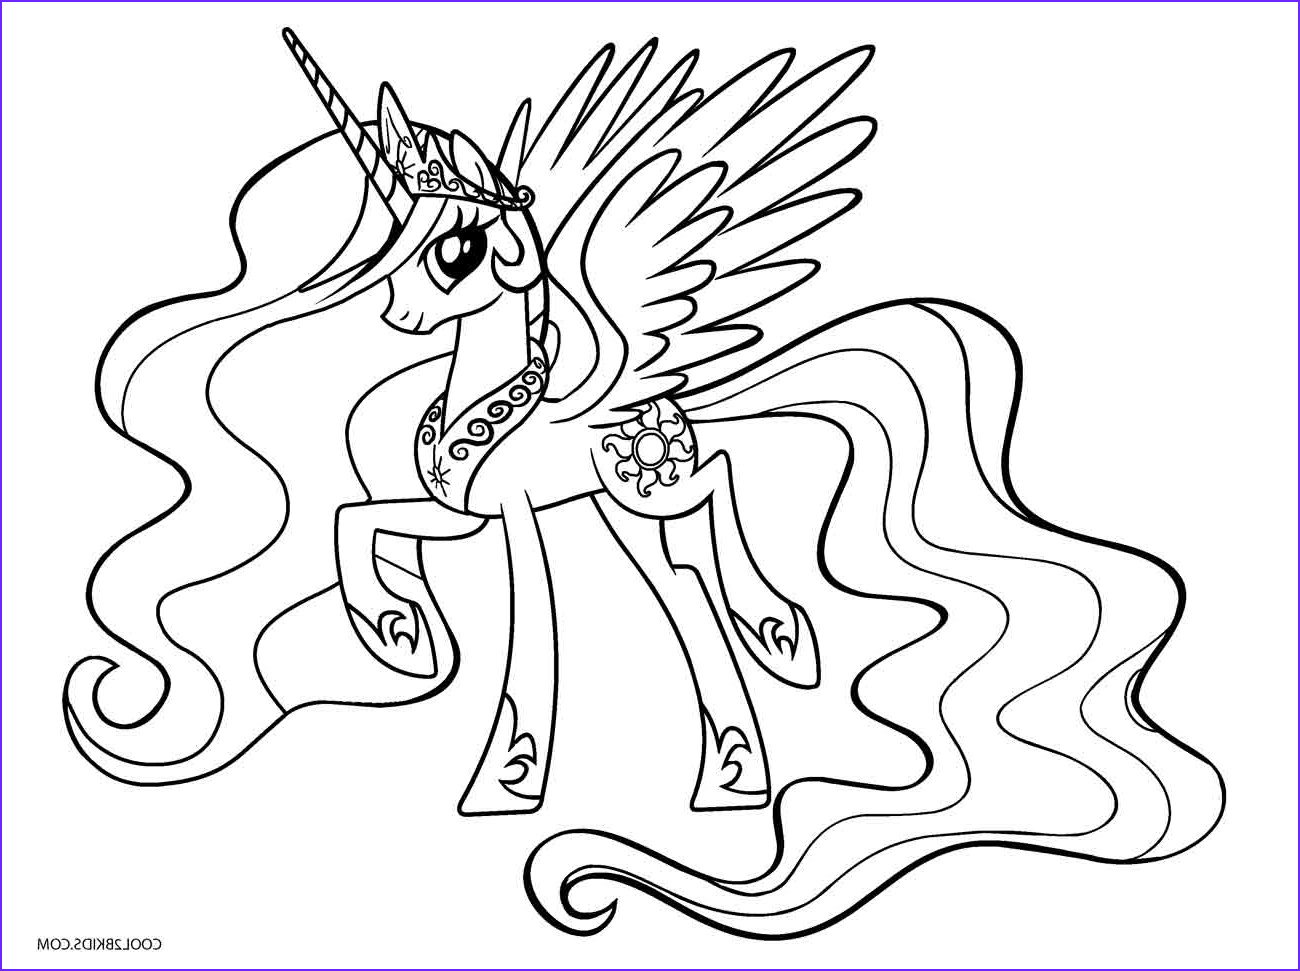 Mlp Coloring Books Luxury Photos Free Printable My Little Pony Coloring Pages for Kids